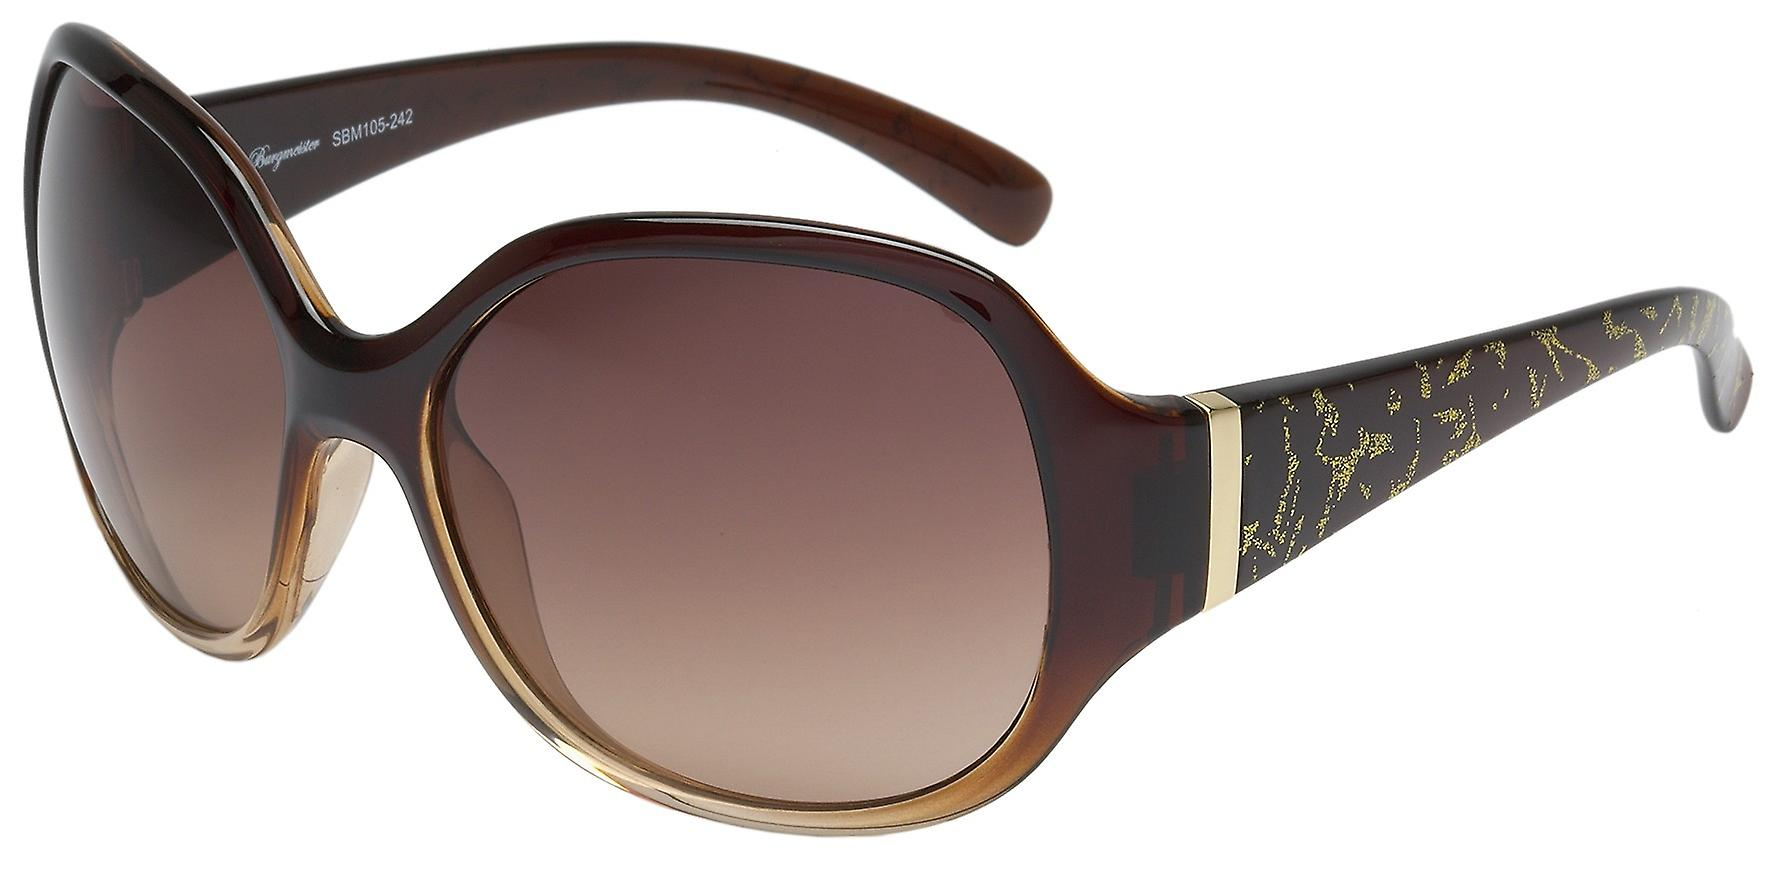 Burgmeister Ladies sunglasses Paris, SBM105-242